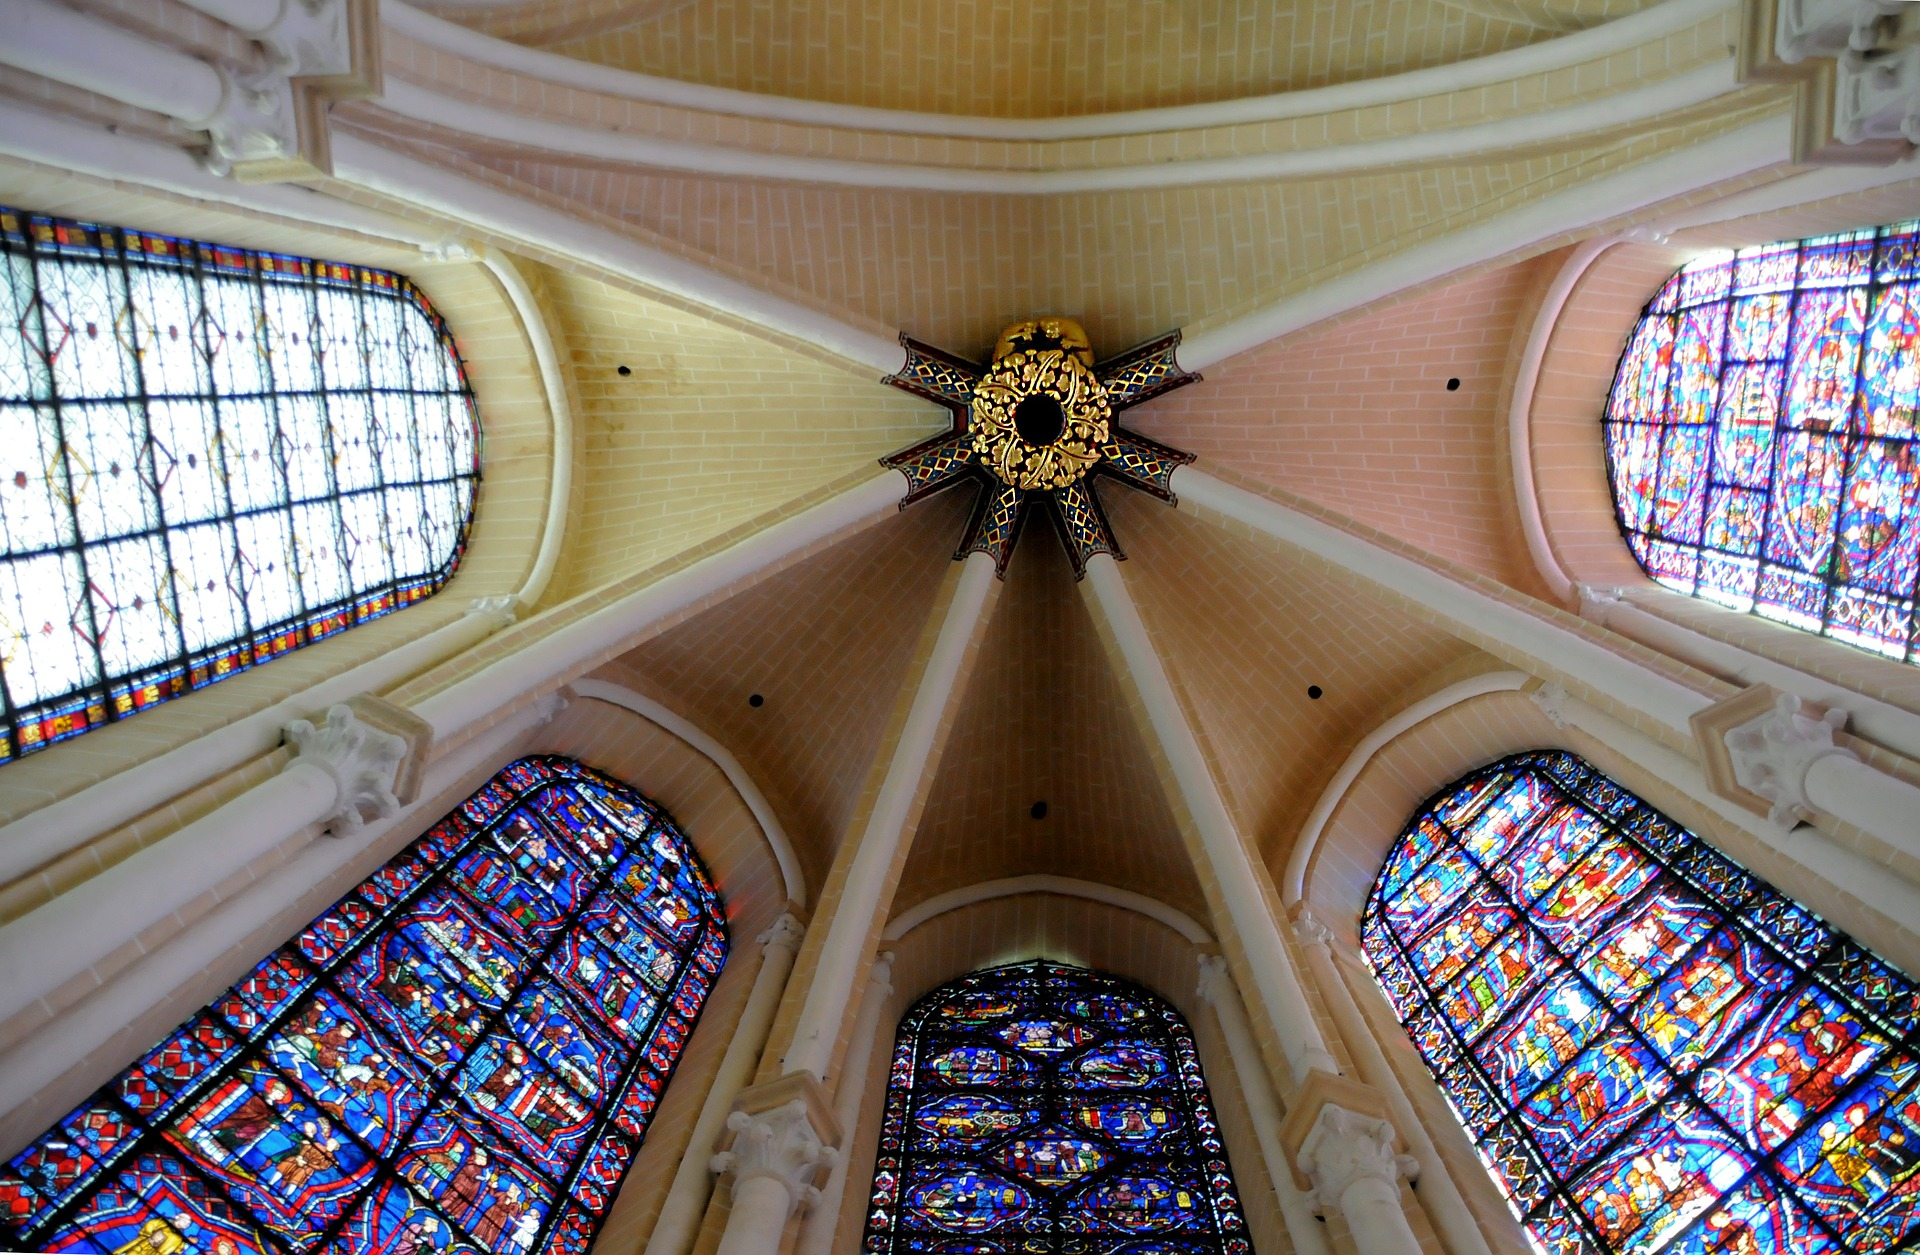 Stained glass windows from the Chartres Cathedral